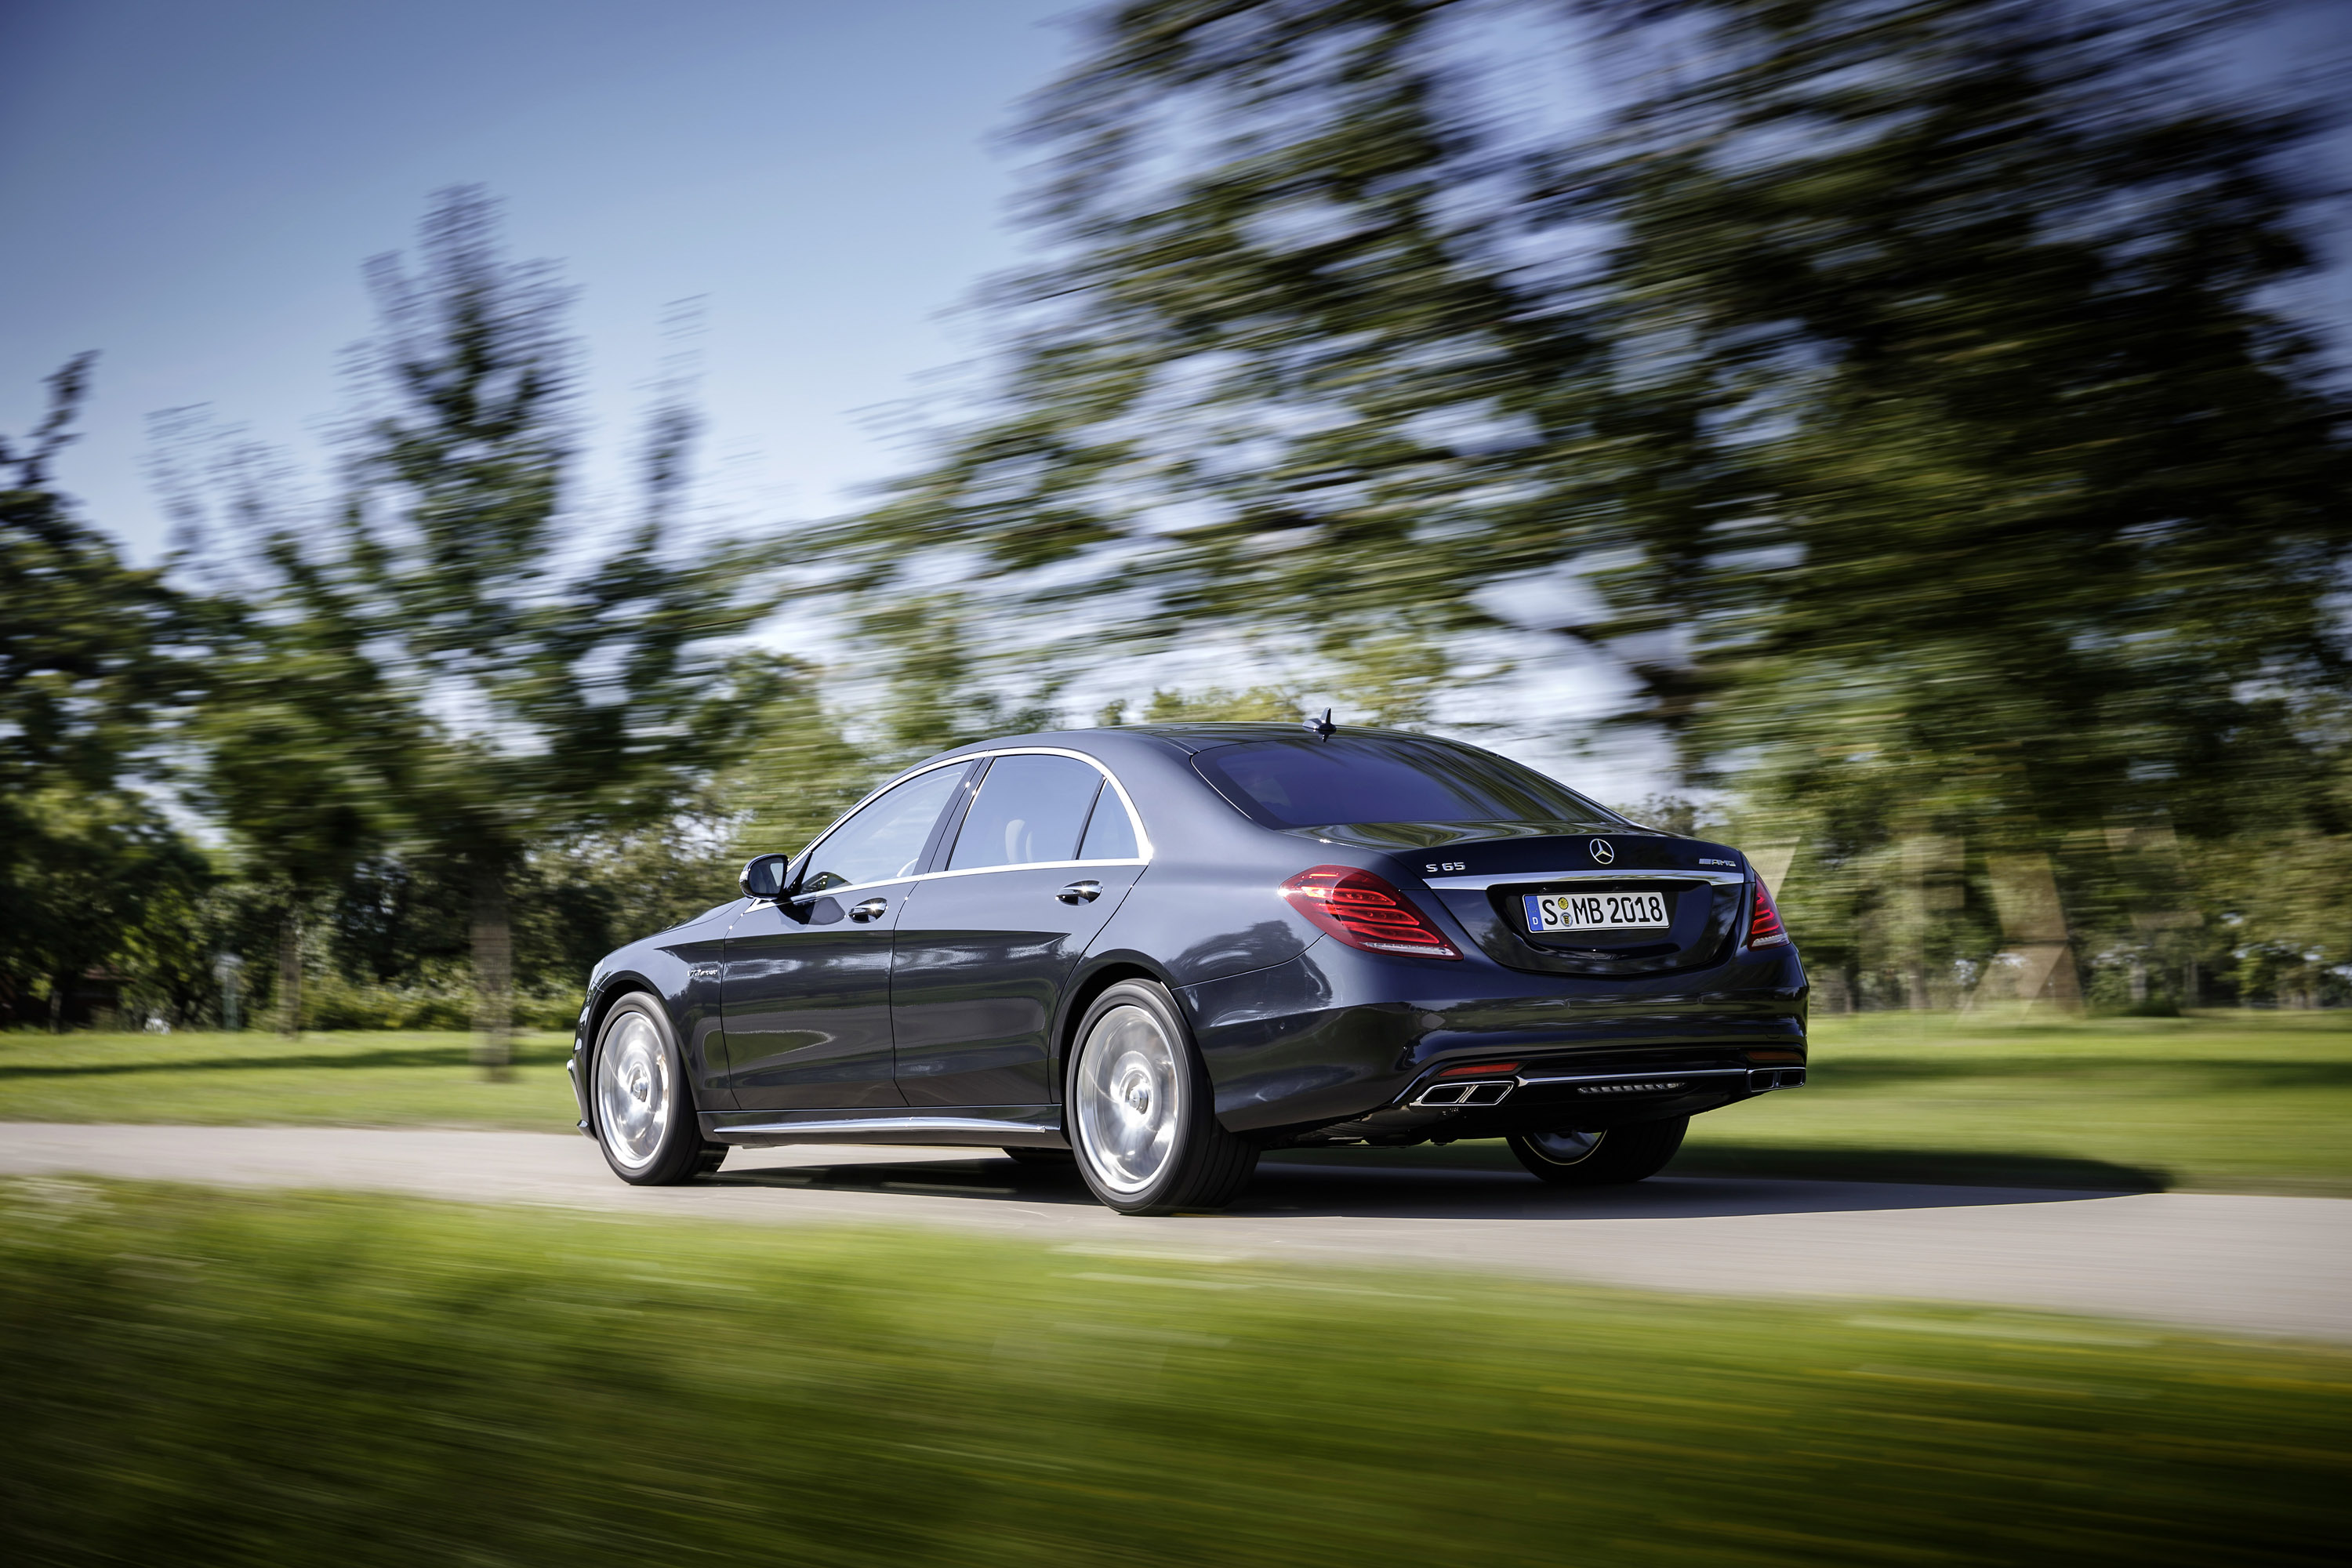 2014 mercedes benz s65 amg 0 250 km h video for 2014 mercedes benz s65 amg coupe